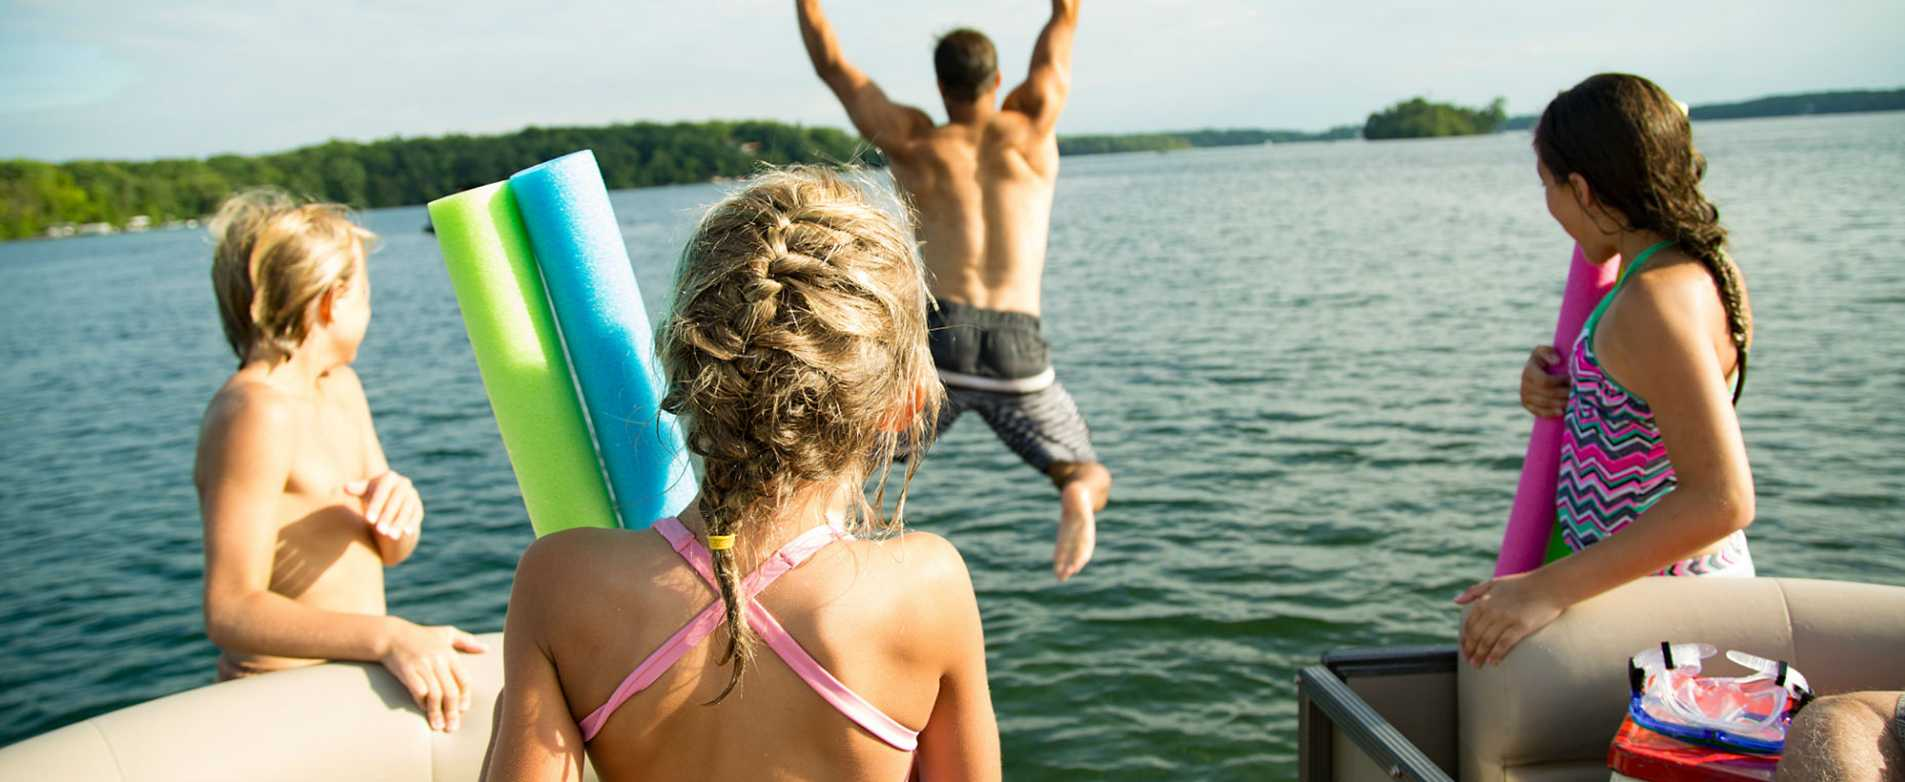 Dad Jumping off Pontoon Boat While Daughters Watch